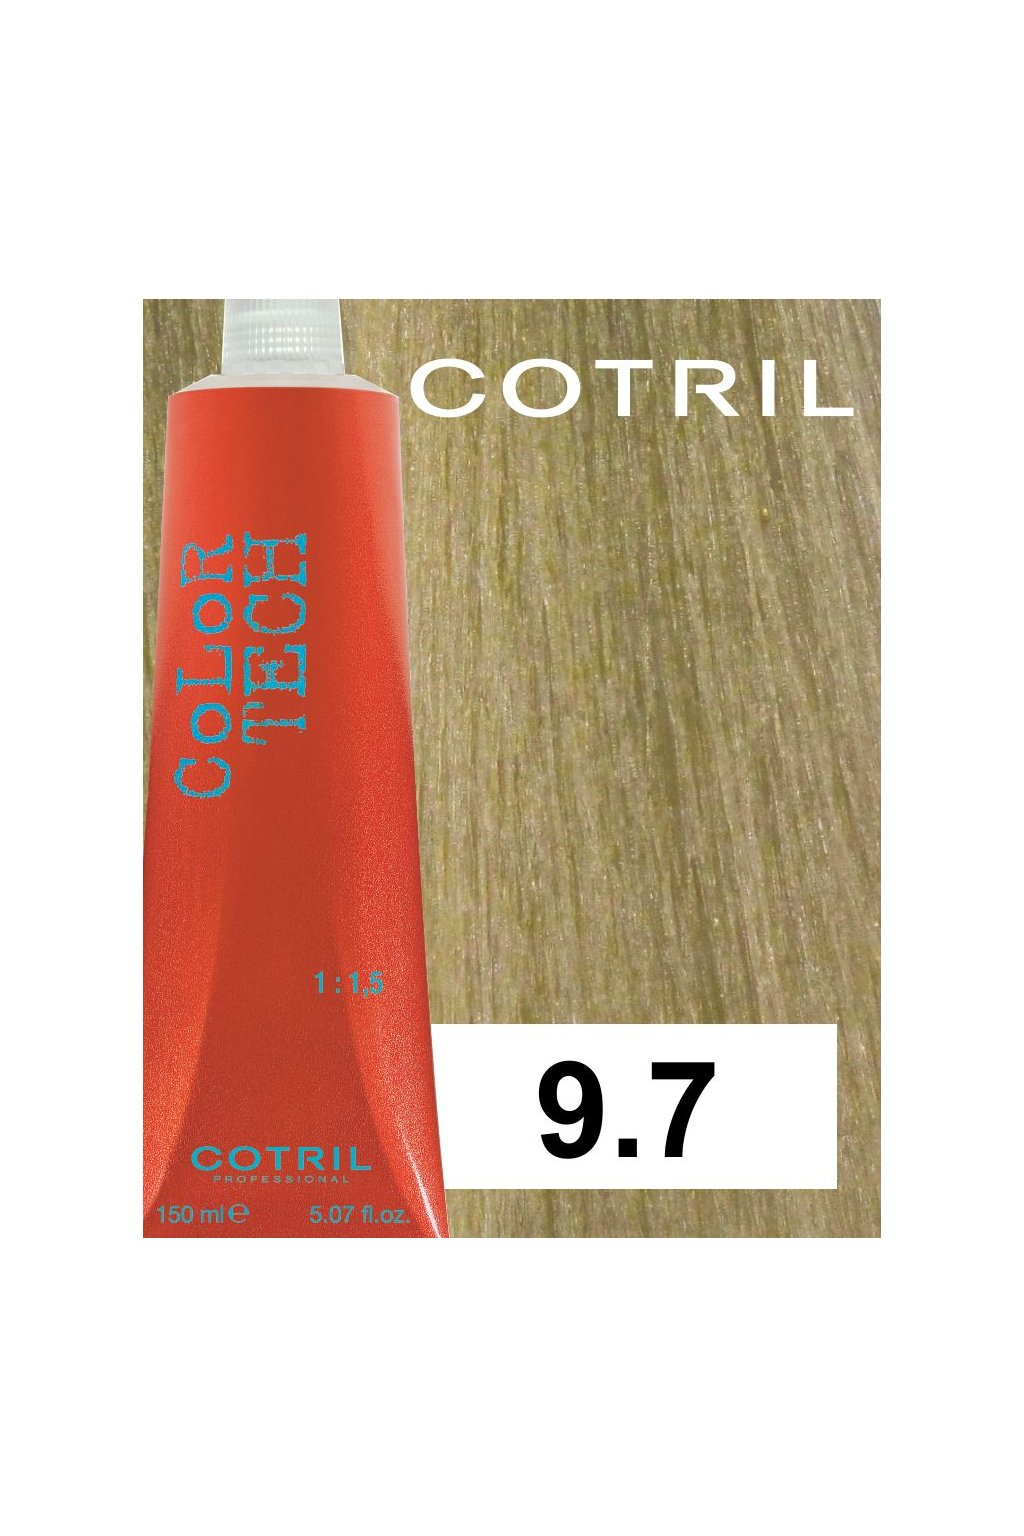 9 7 ct cotril